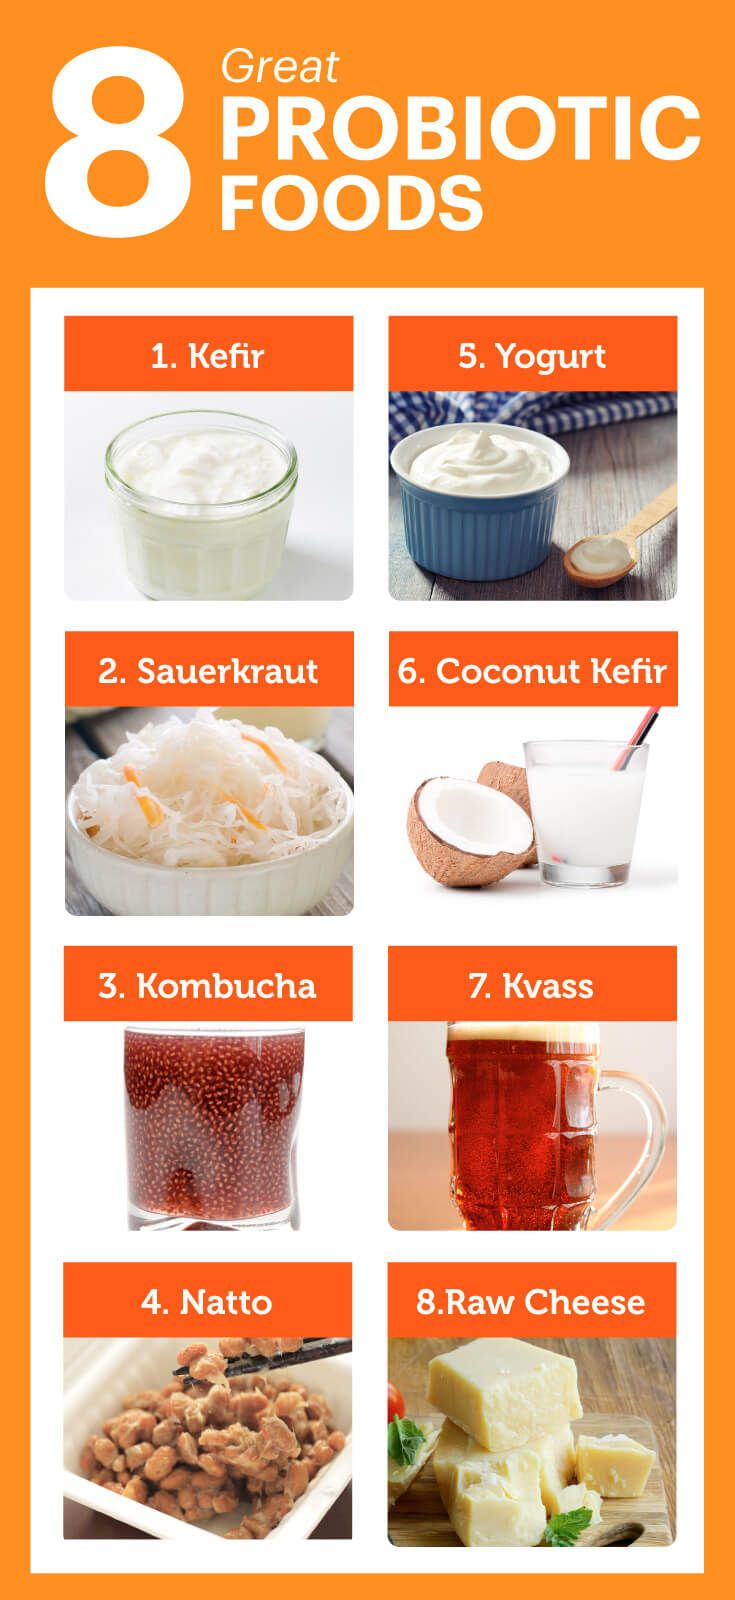 8 Greatest Probiotic Foods You Should Be Eating - Dr. Axe